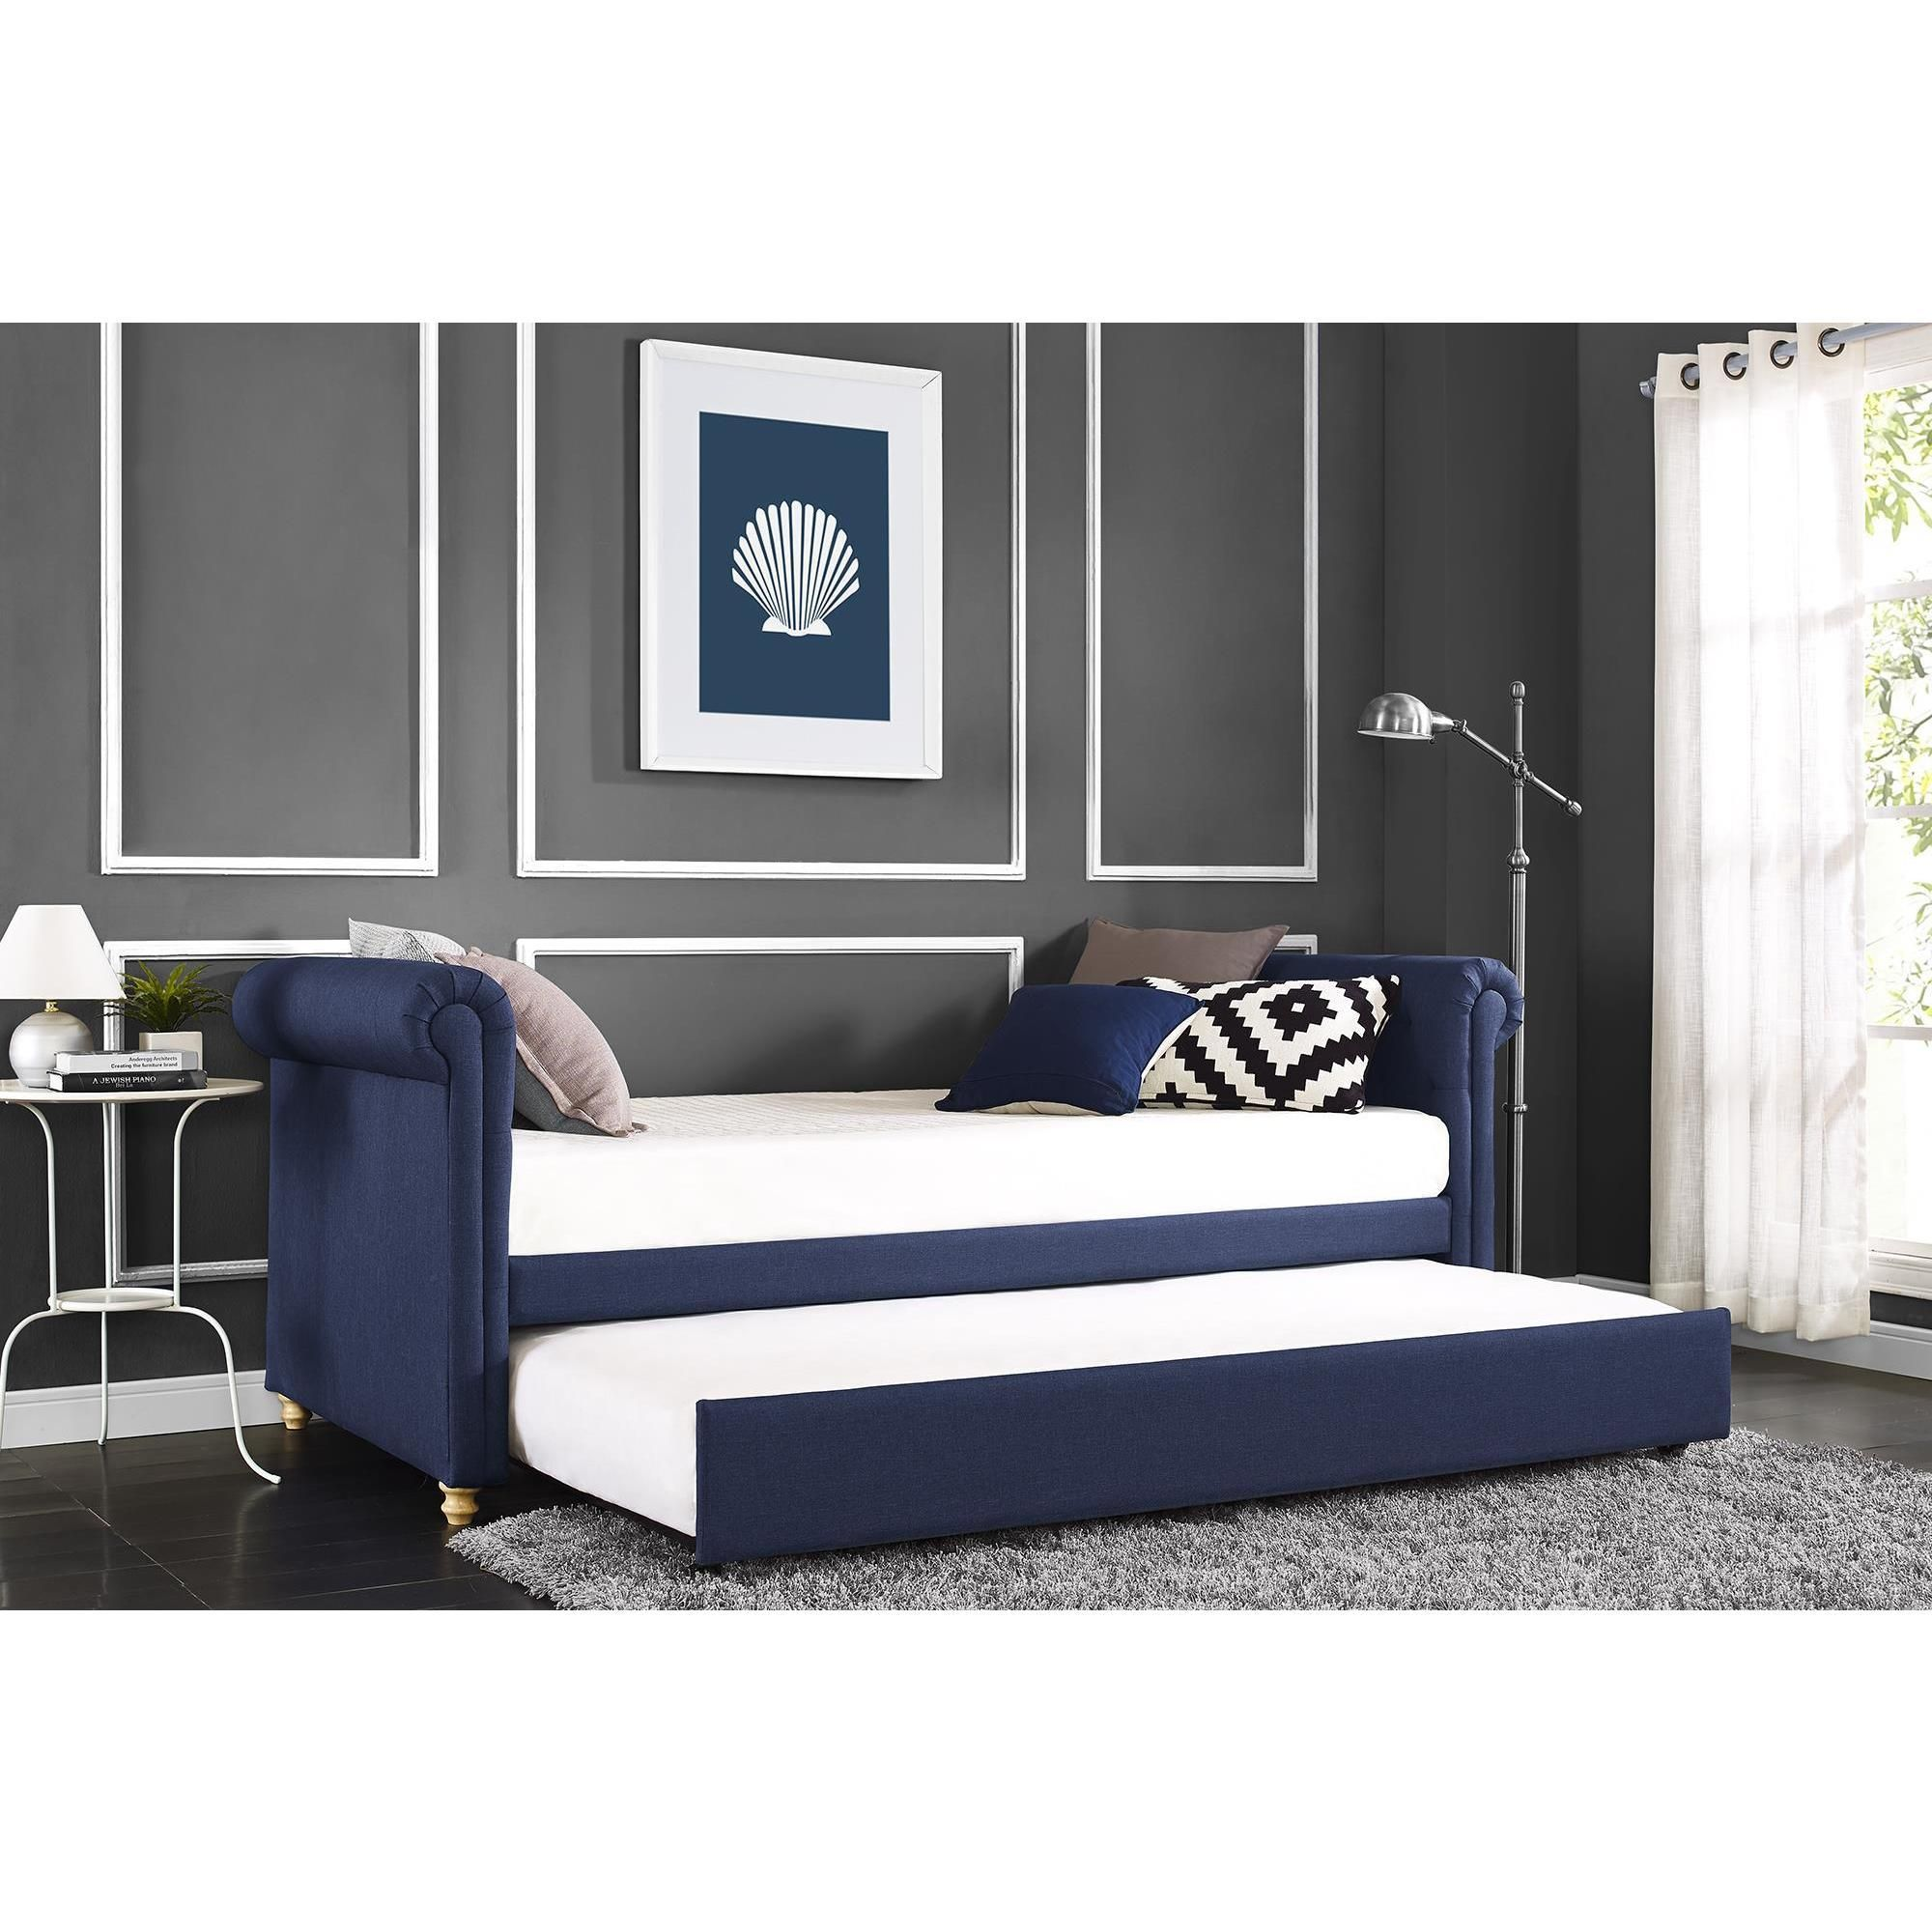 Create a cozy lounge space with DHP's Sophia Daybed and Trundle. Its  slightly sleighed arms